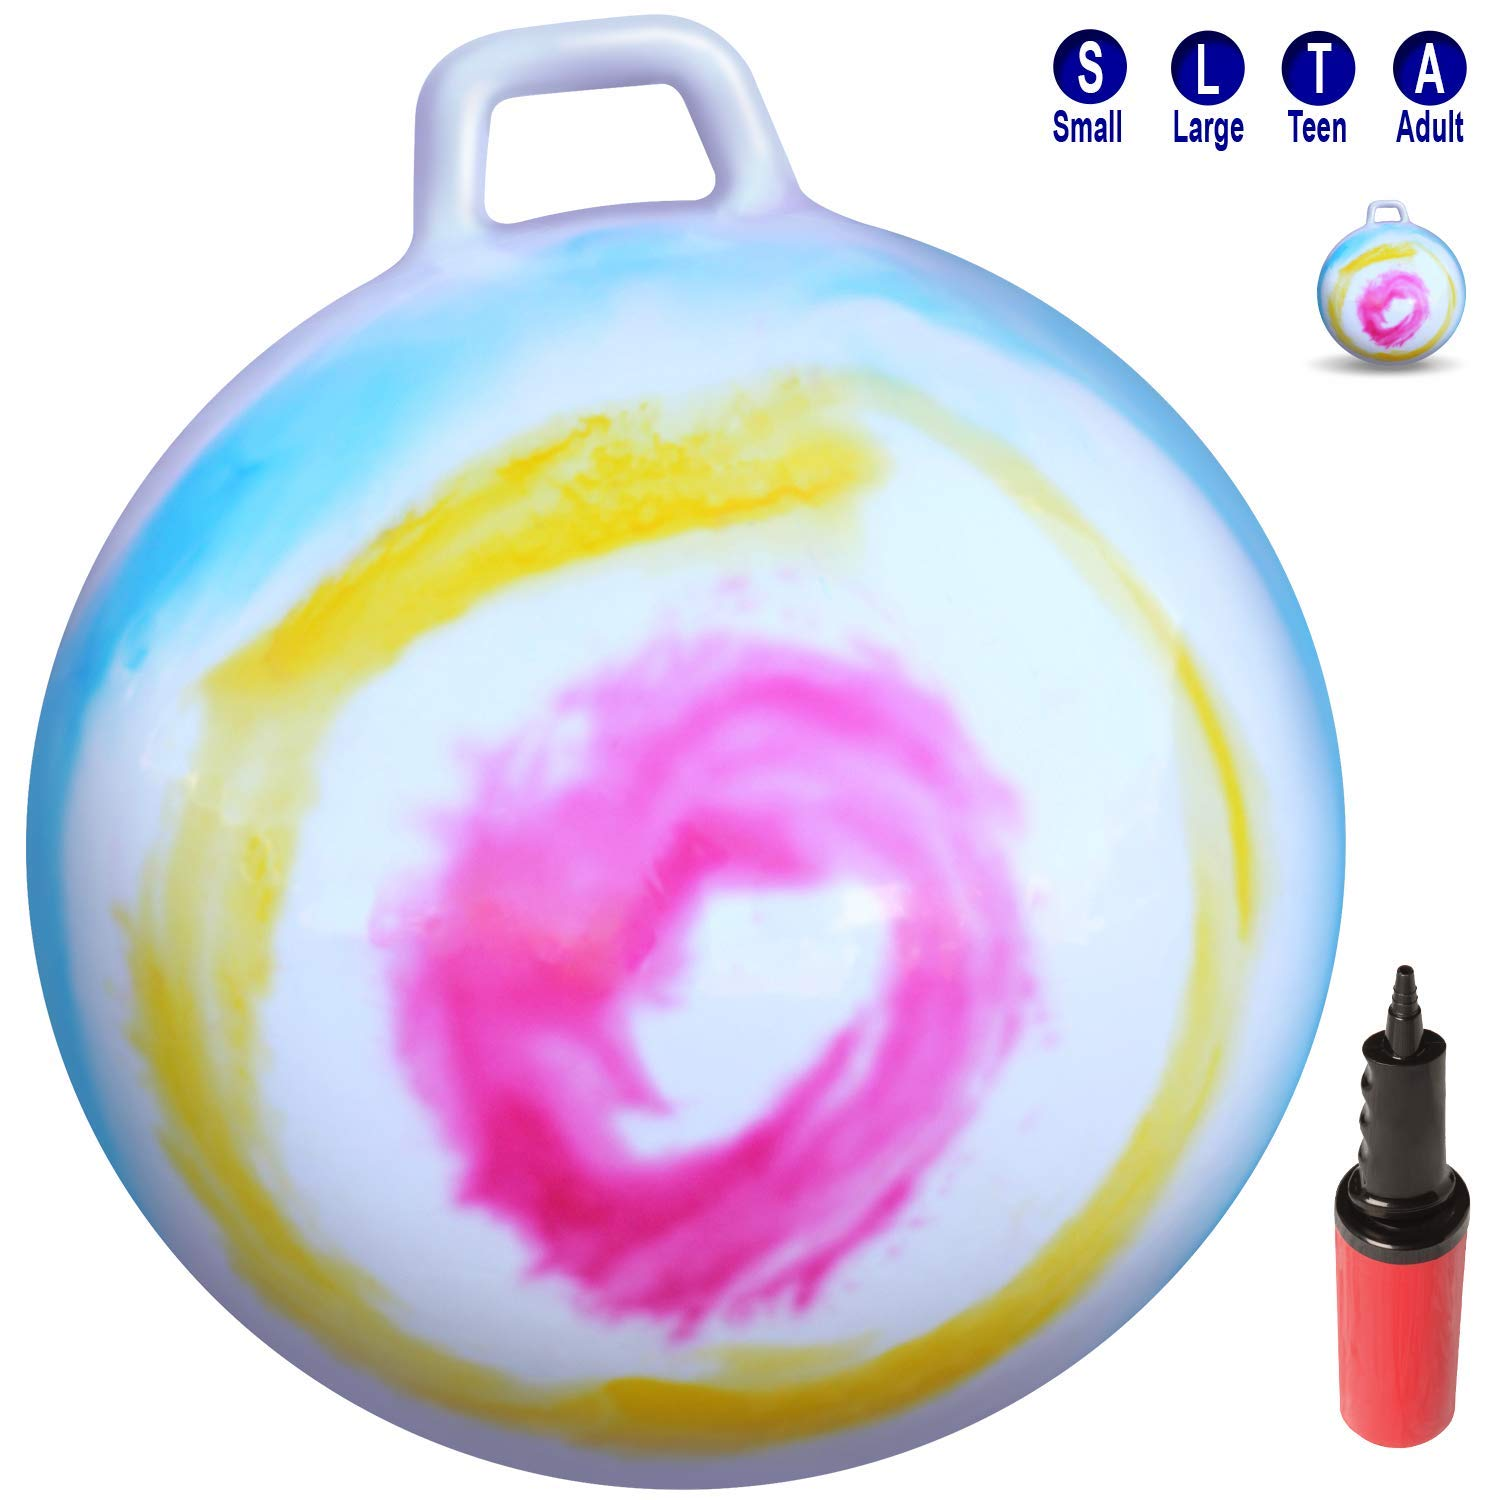 WALIKI Toys Hopper Ball for Kids Ages 3-6 (Hippity Hop Ball, Hopping Ball, Bouncy Ball with Handles, Sit & Bounce, Kangaroo Bouncer, Jumping Ball, 18 Inches, Rainbow Tie Dye, Pump Included)